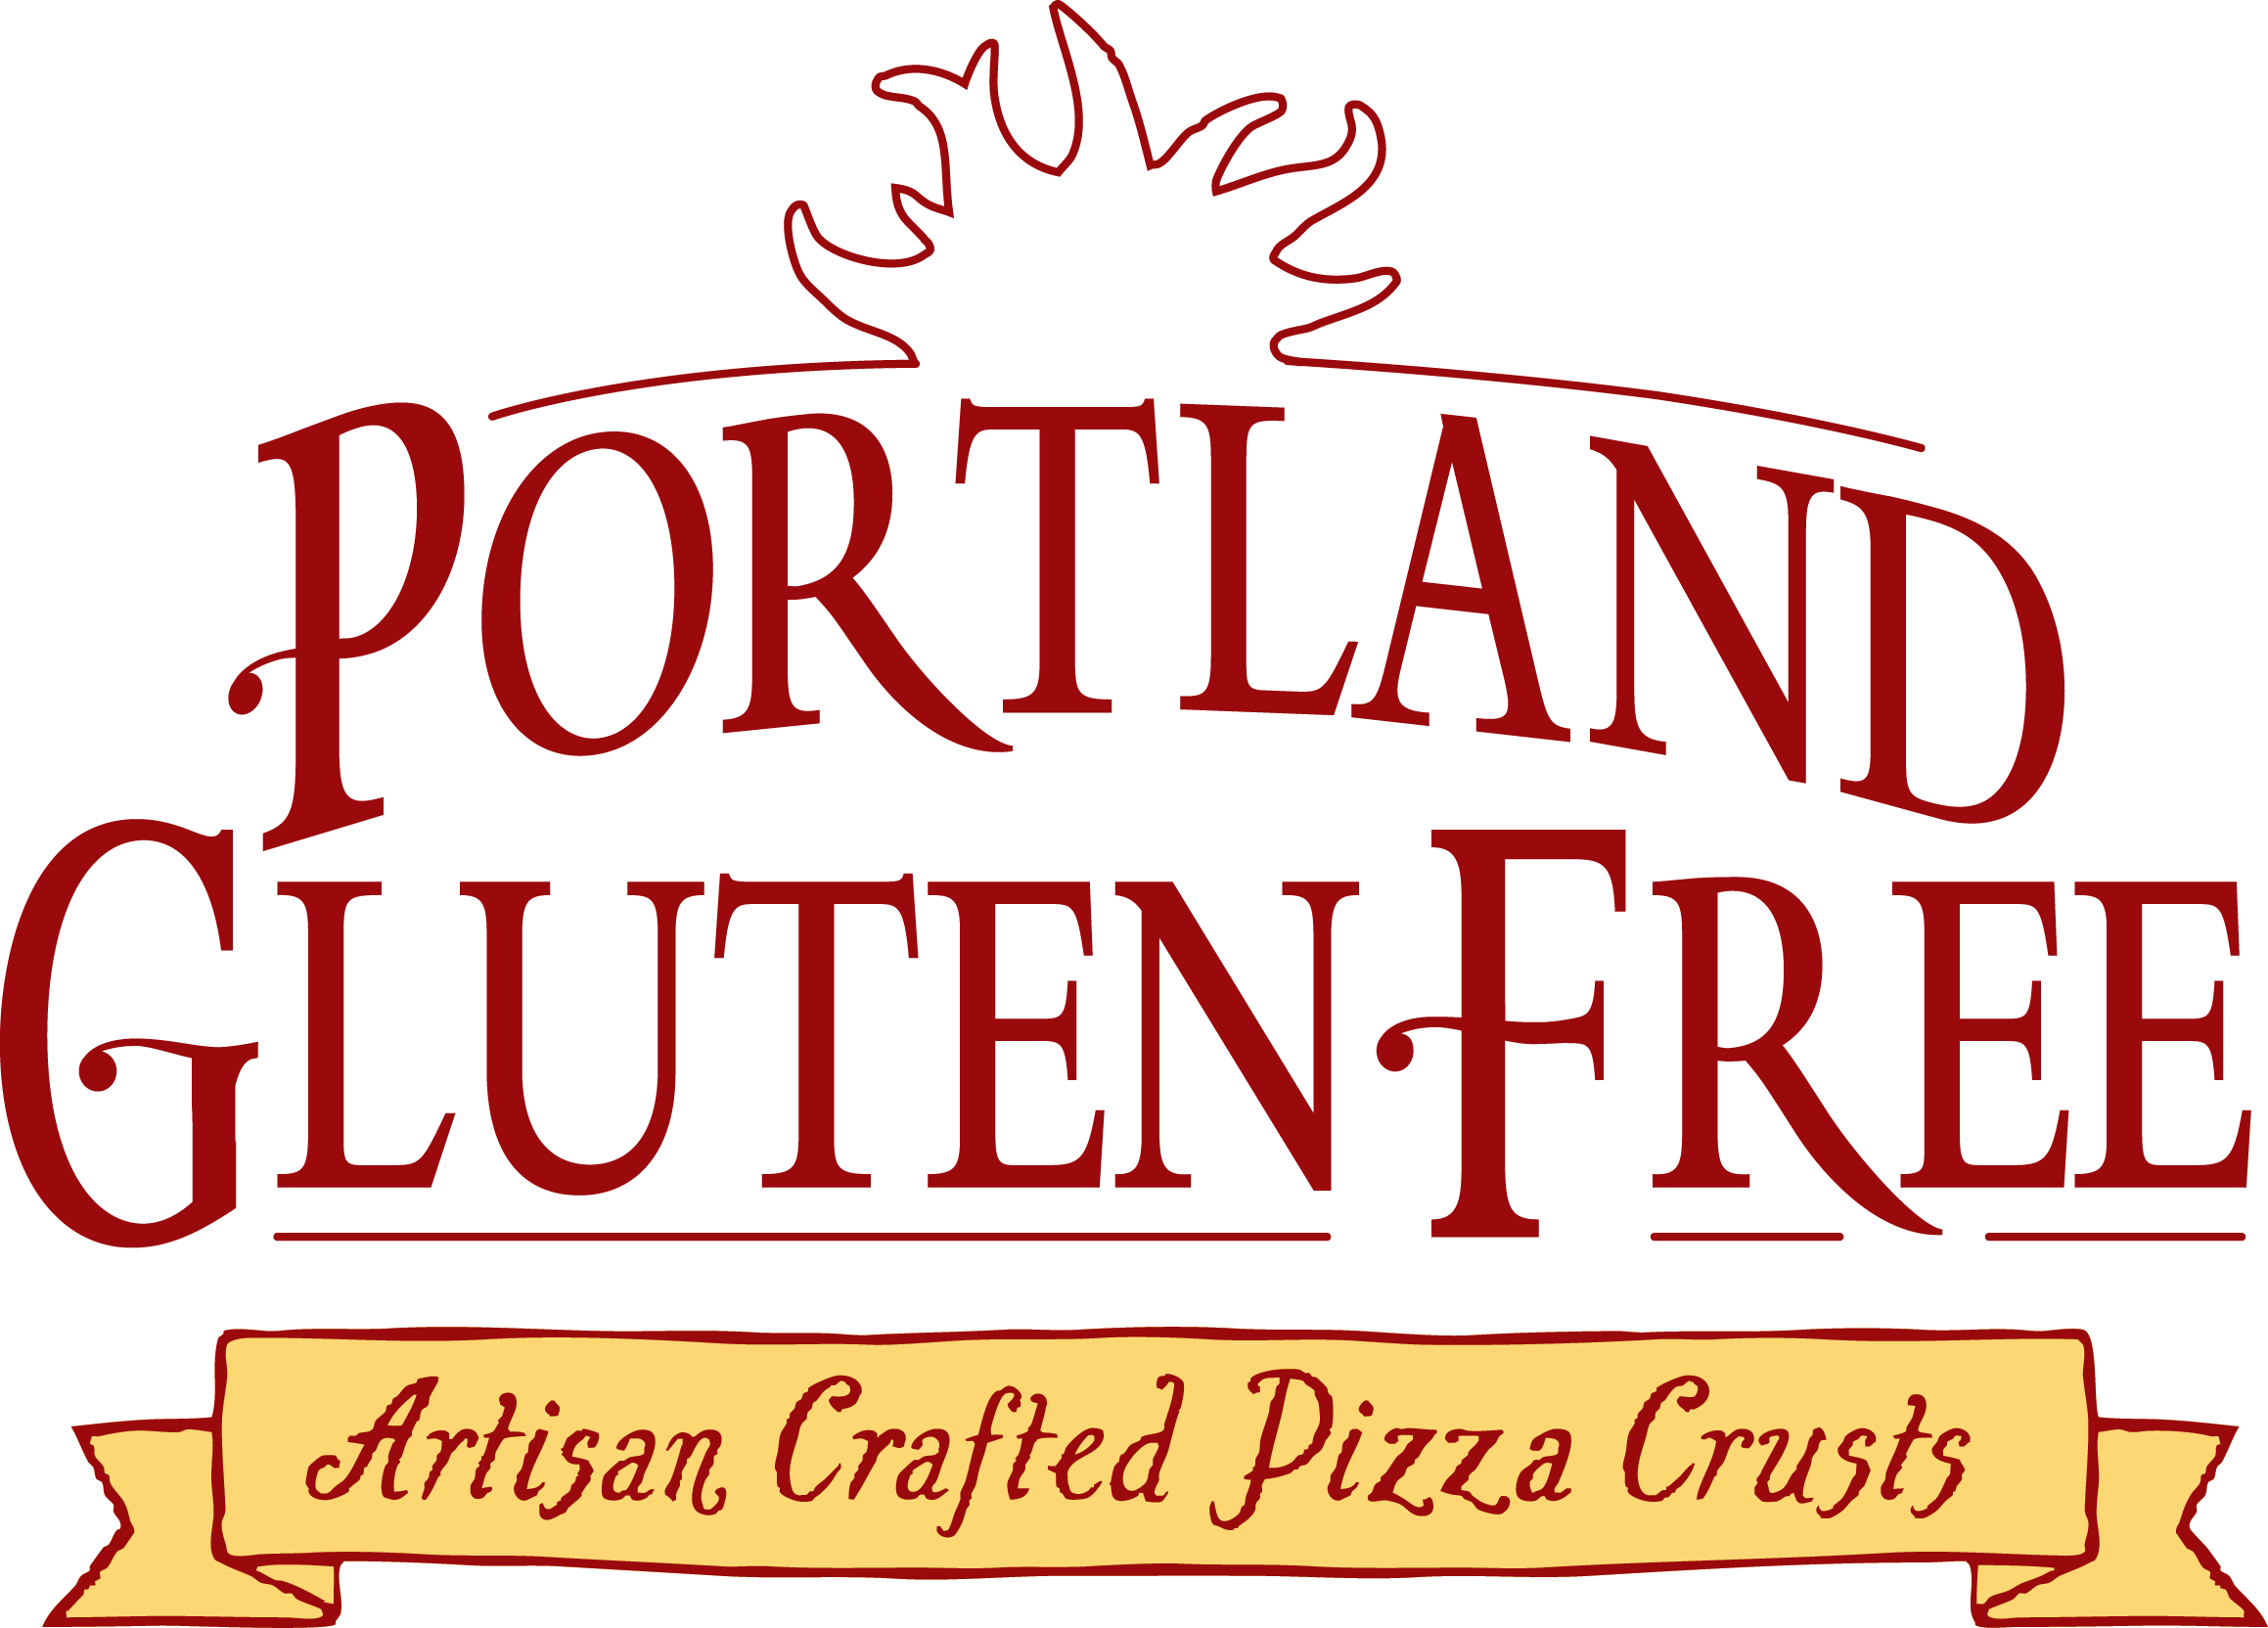 Portland Gluten-Free—Artisan crafted pizza crusts